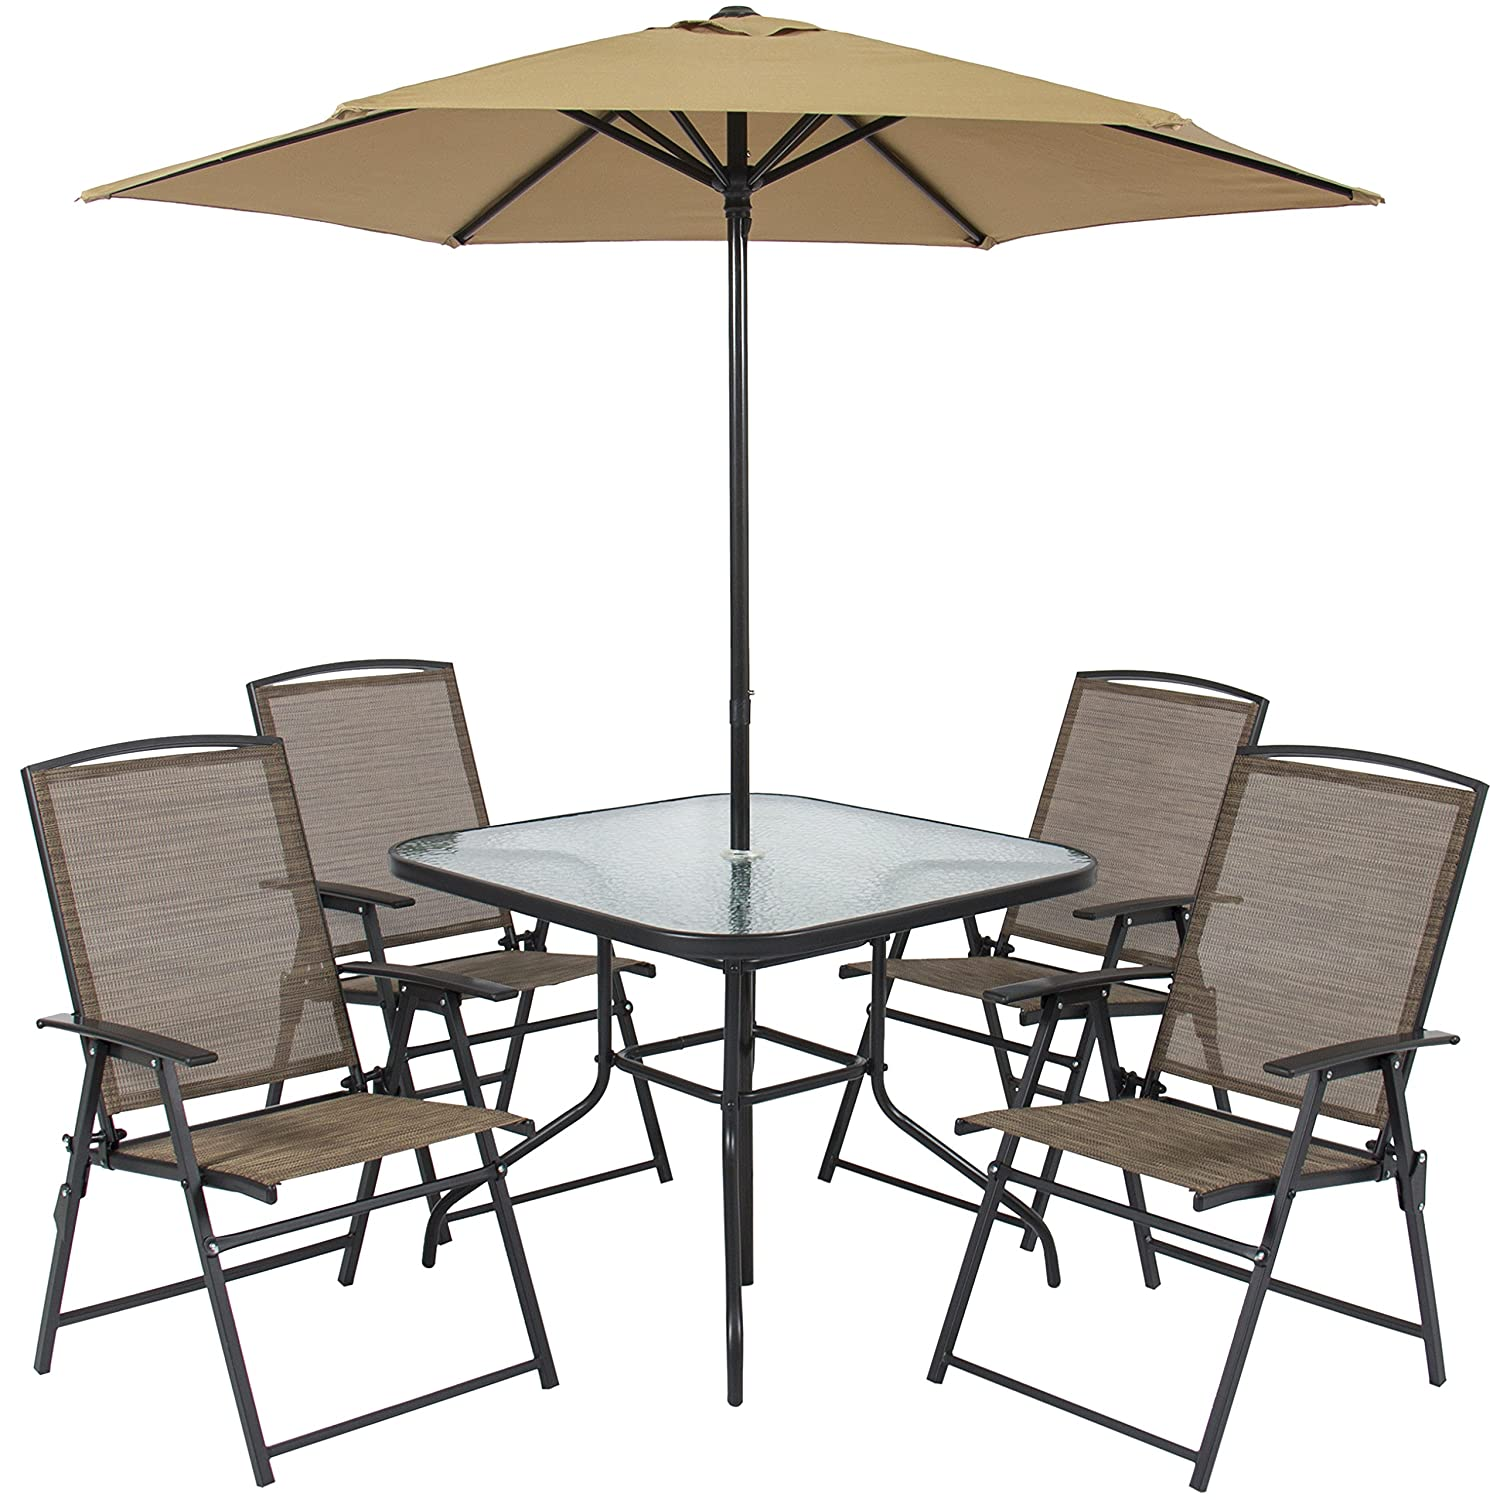 amazoncom best choice products 6pc outdoor folding patio dining set w table 4 chairs umbrella and built in base garden outdoor - Garden Furniture 6